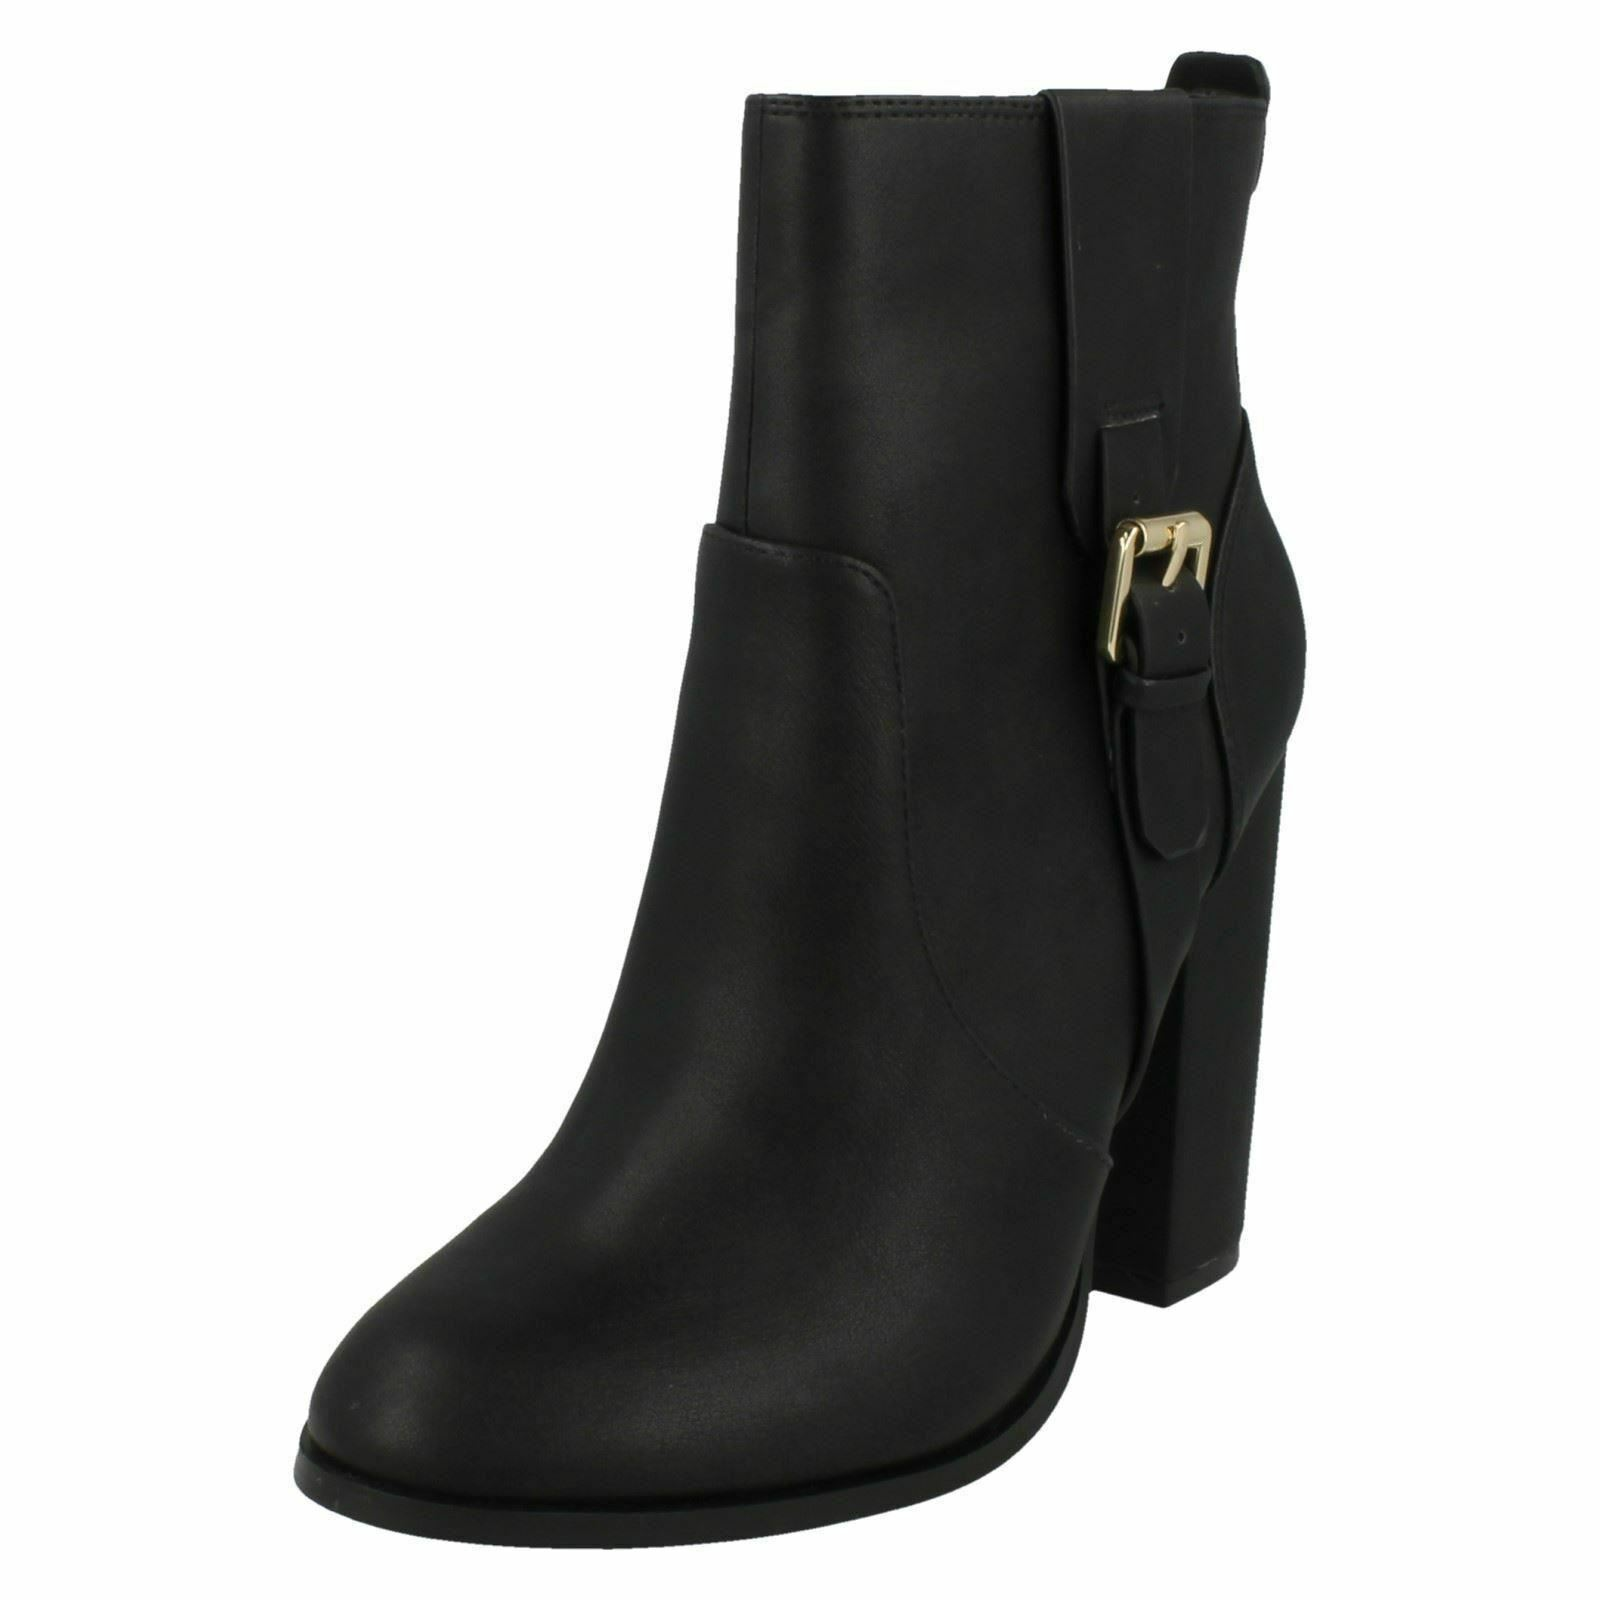 LADIES ANNE MICHELLE HIGH HEEL ZIP BUCKLE STRAP TROUSER ANKLE BOOTS F50648 SIZE